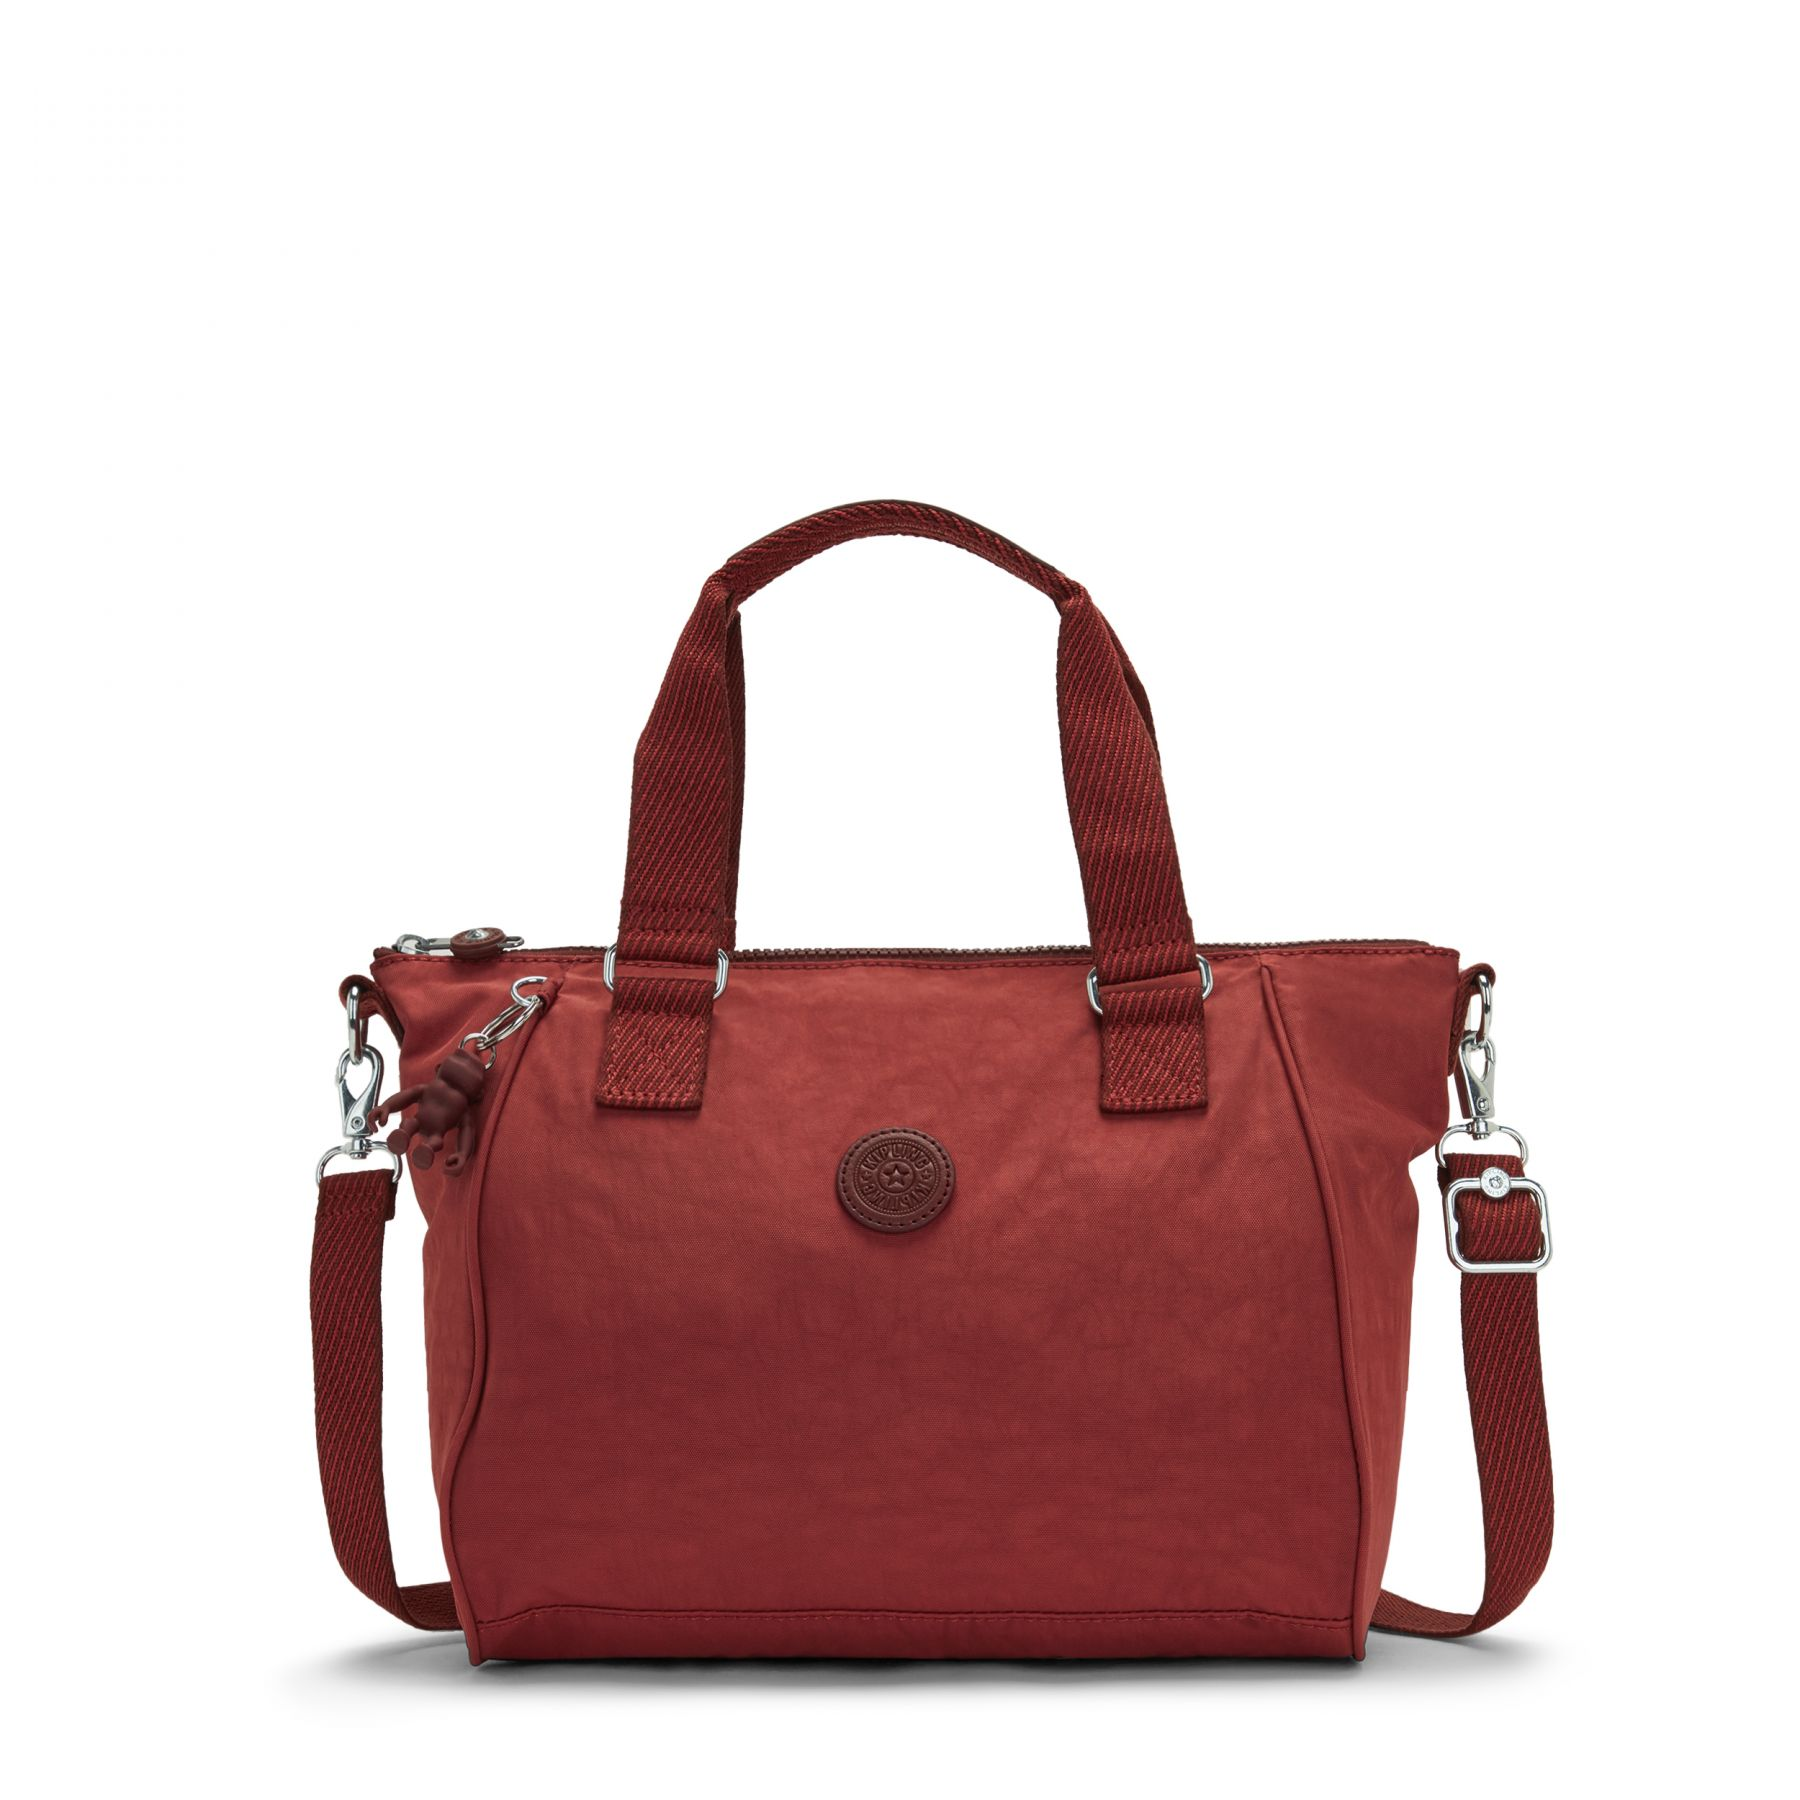 AMIEL BAGS by Kipling - Front view